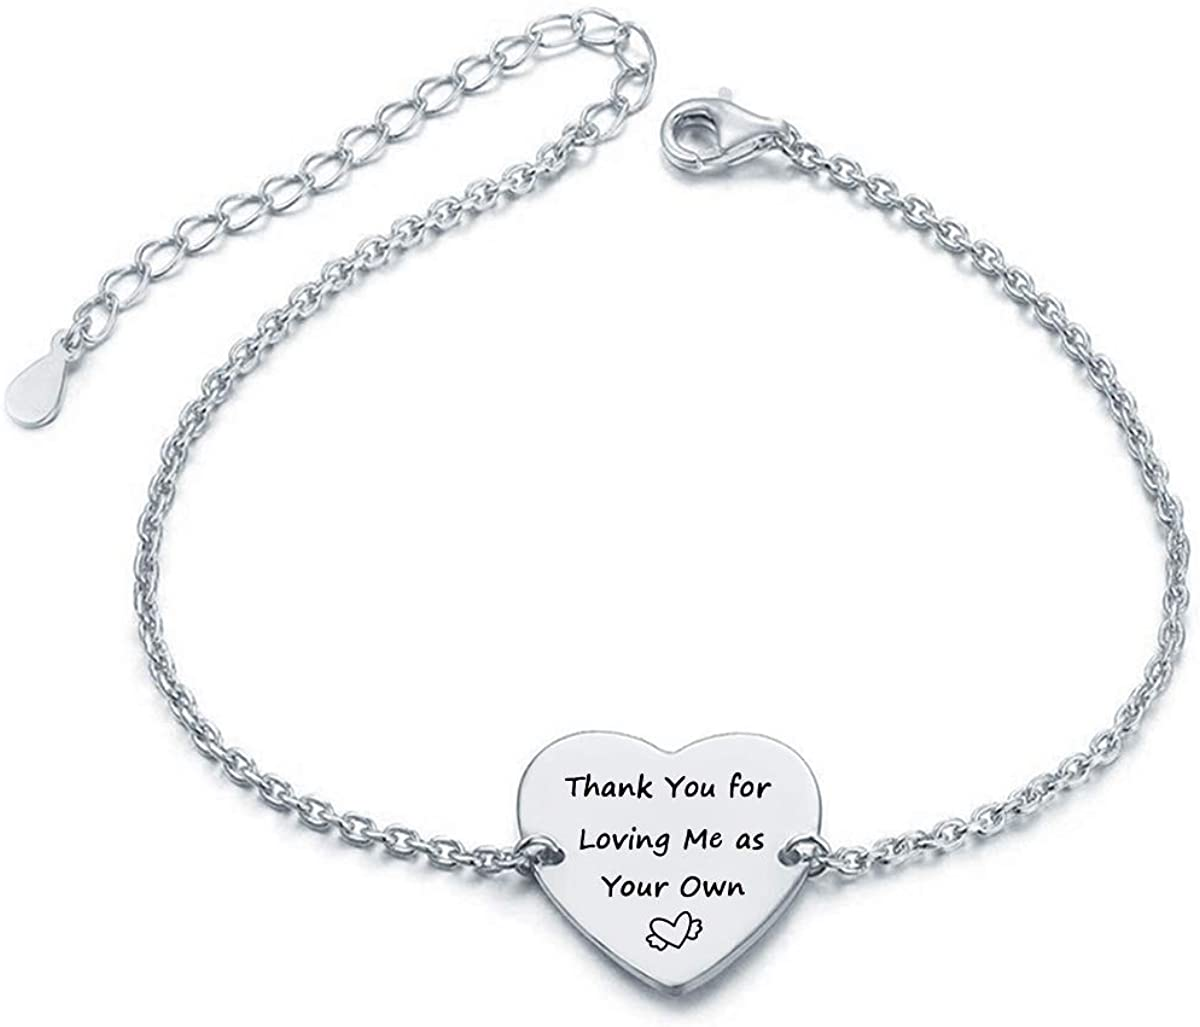 TzrNhm Mother Daughter Bracelet Gifts for Mom Wife New Mom Grandmom Stepmom Daughter Mother in Law Mother-to-be